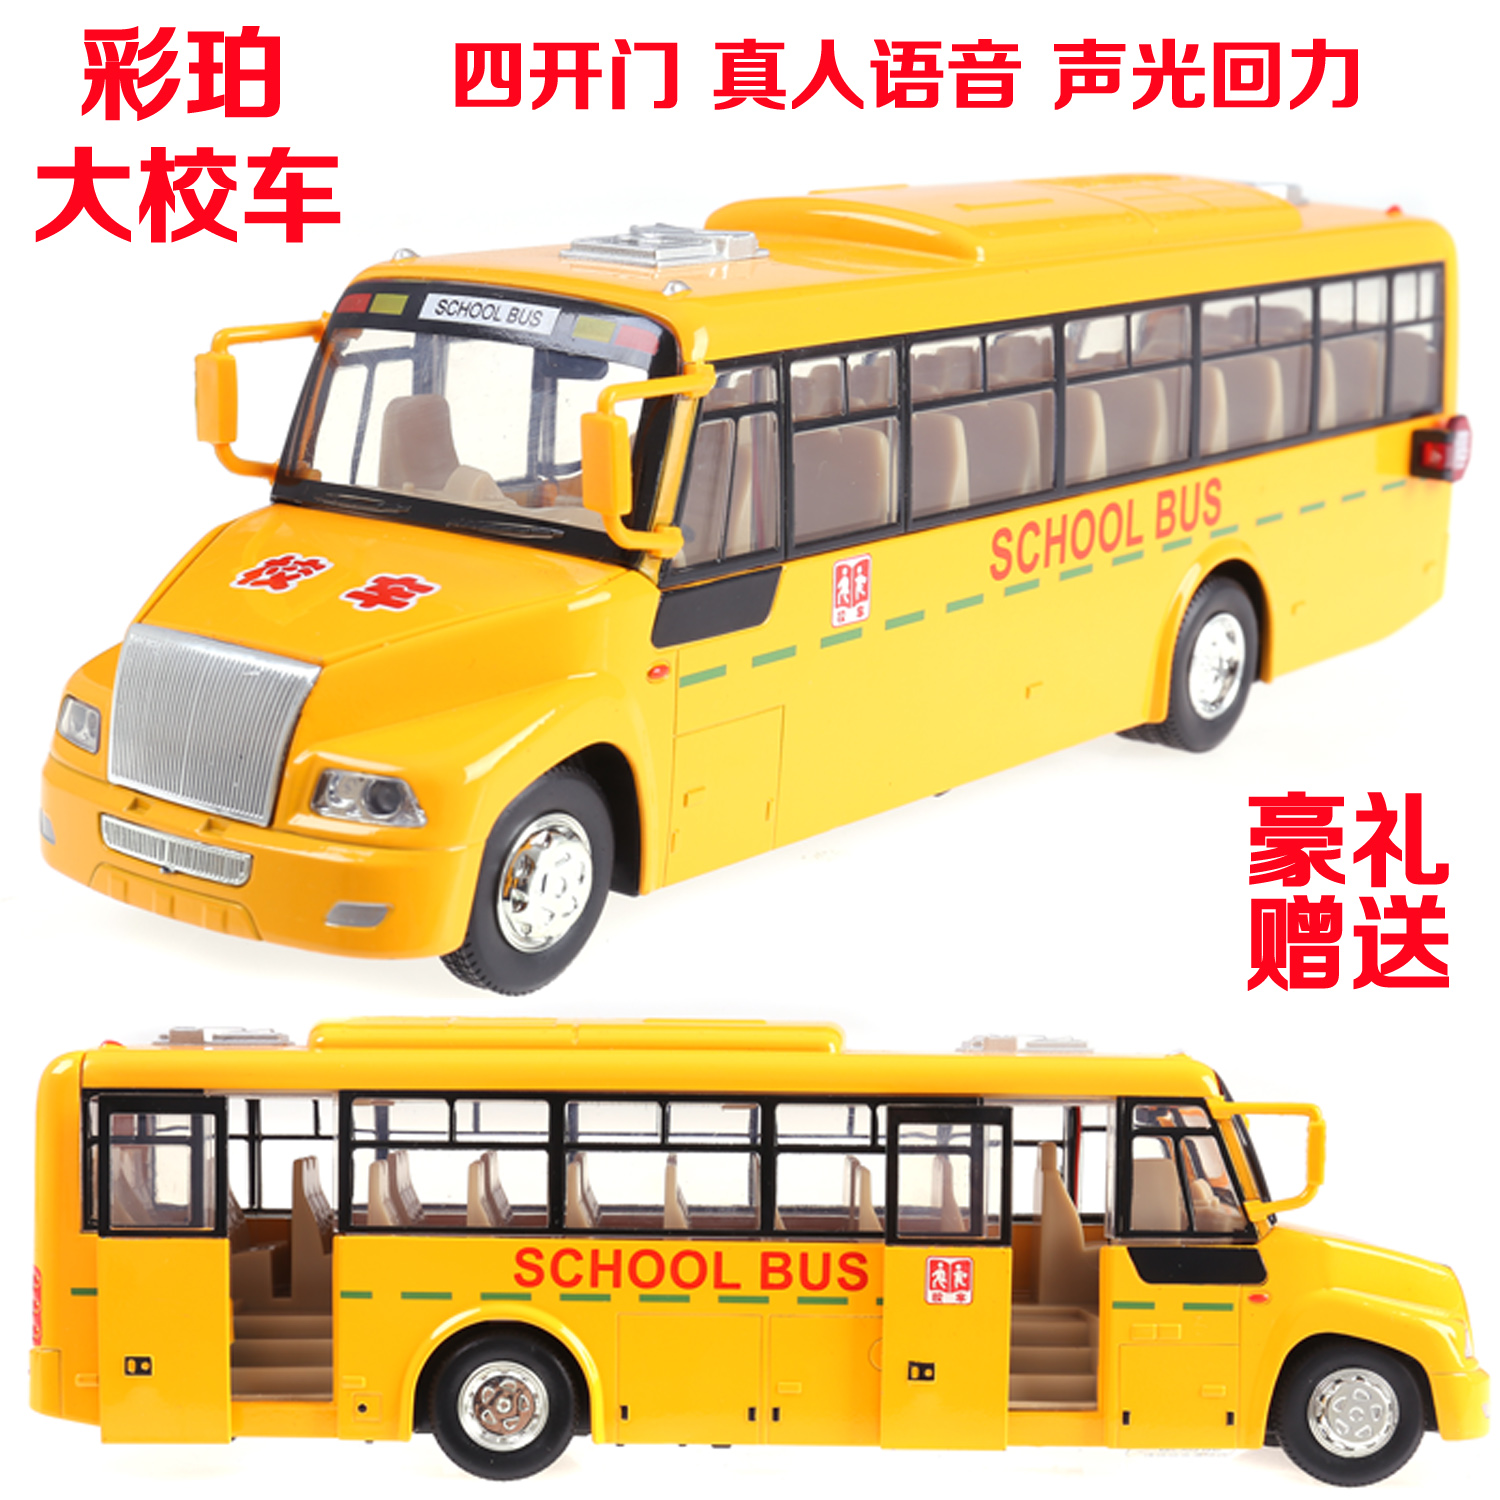 Ultralarge school bus bus alloy car model acoustooptical WARRIOR toys(China (Mainland))